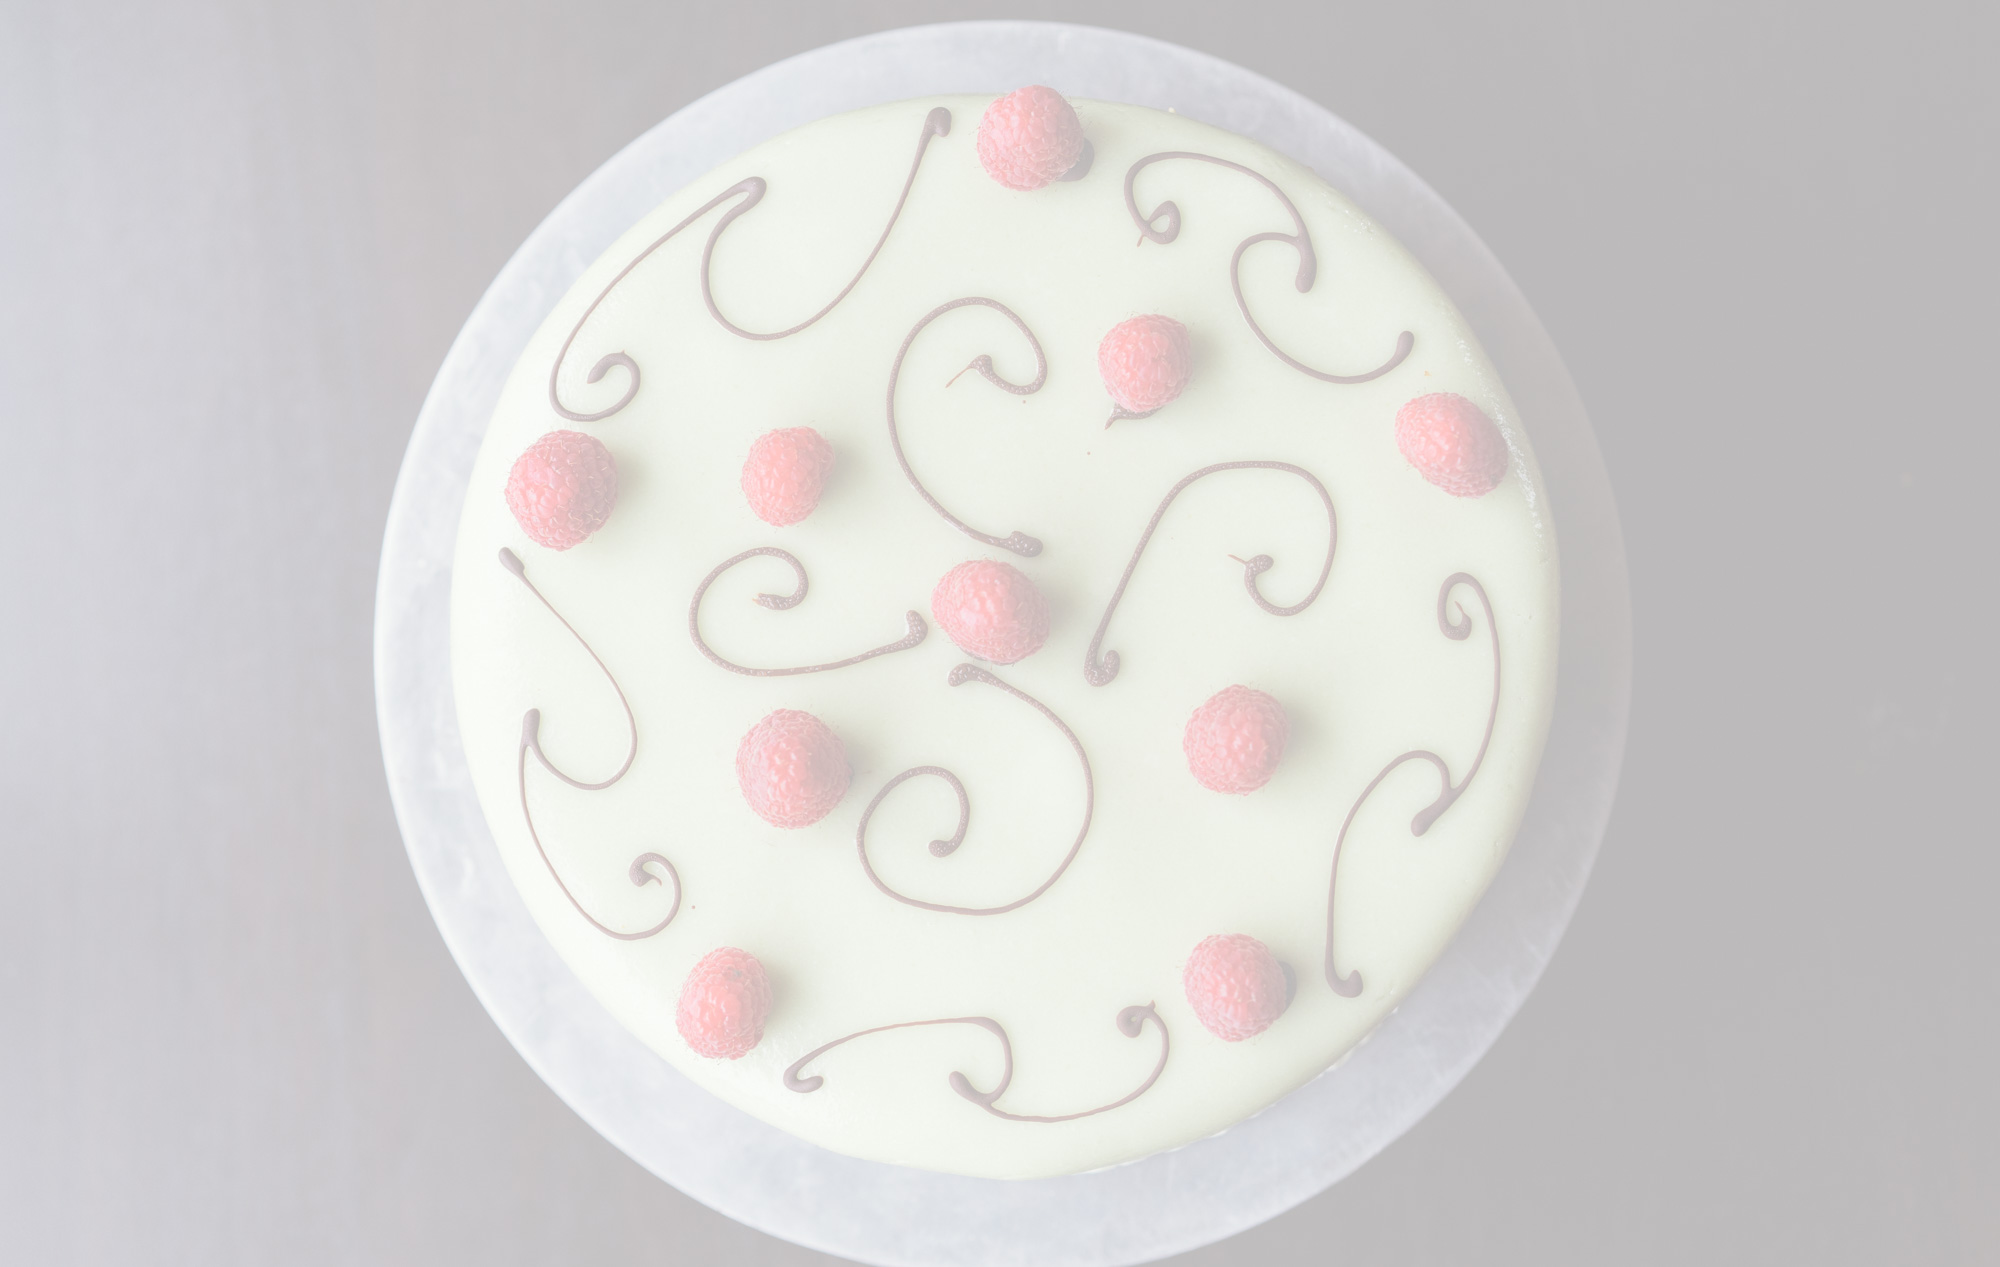 Marzipan$43.95 - Layers of yellow cake and raspberry mousse, topped with marzipan.